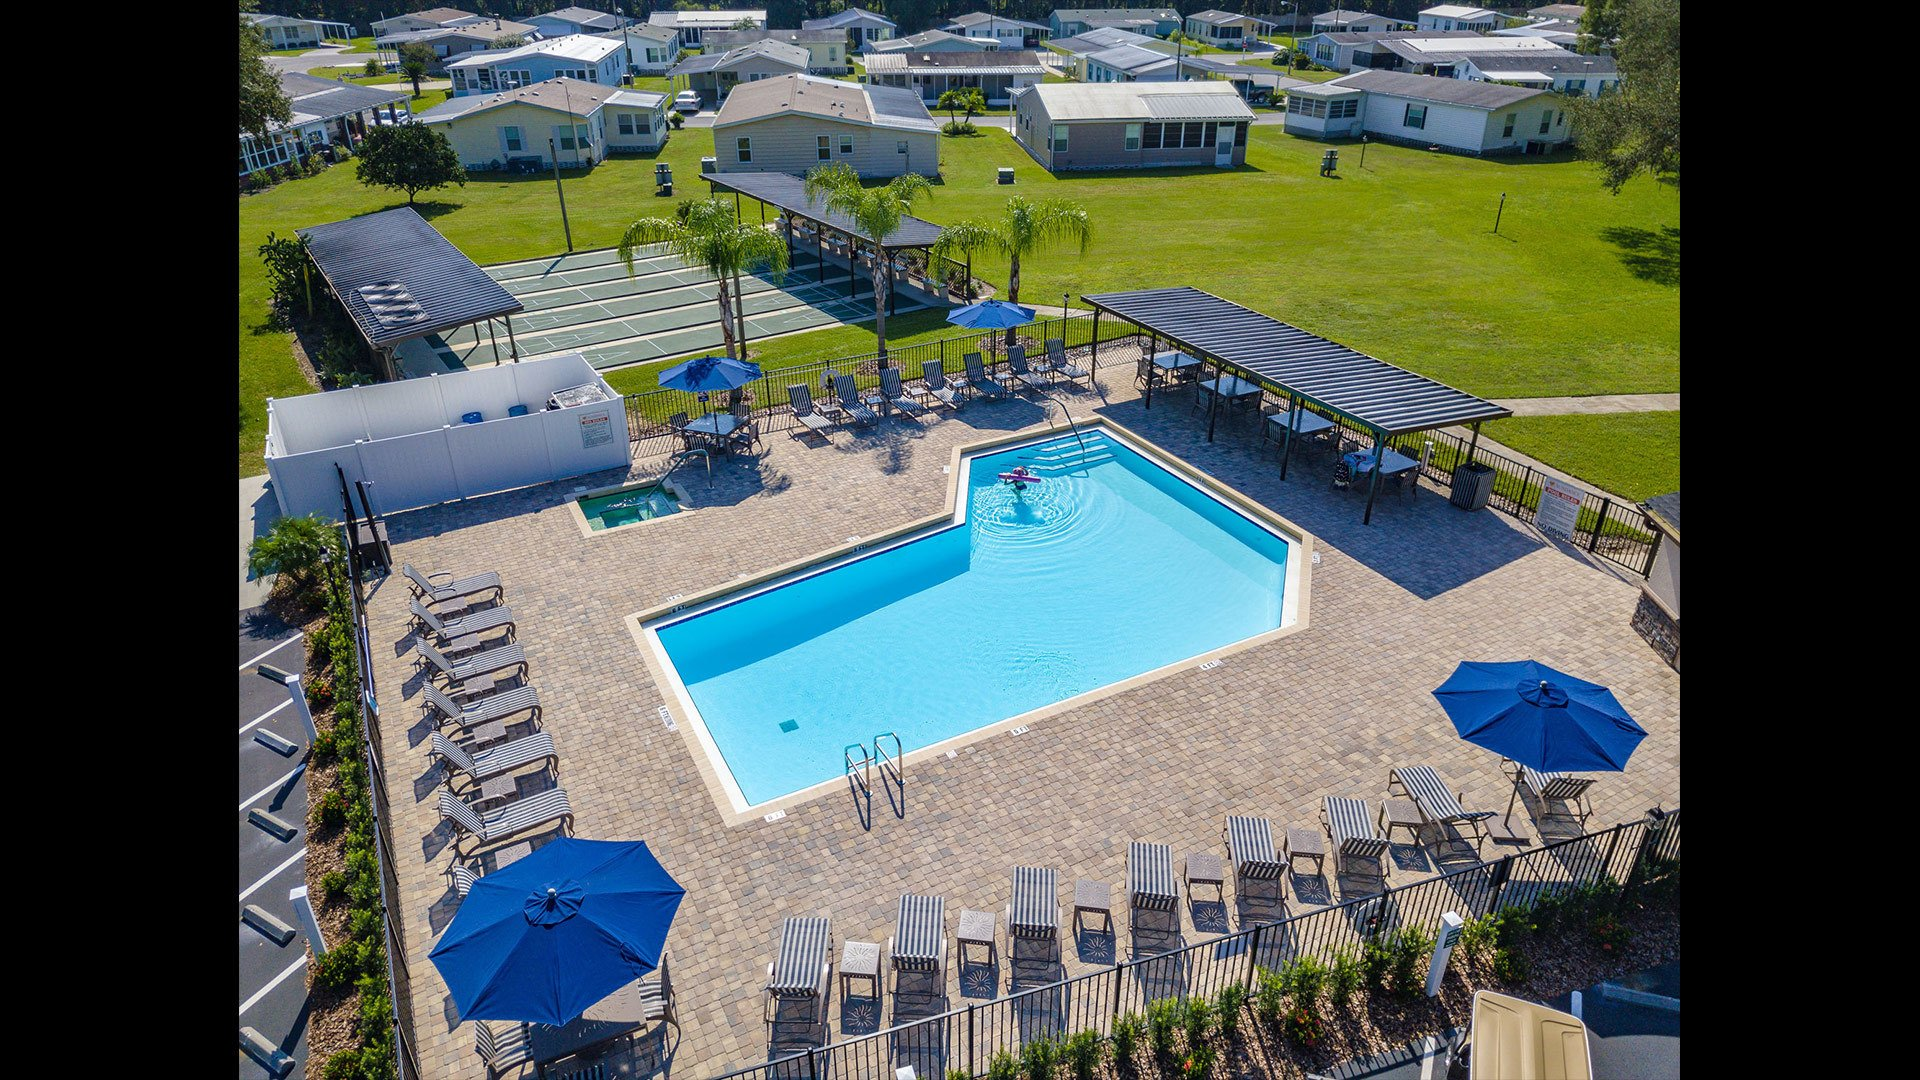 Aerial View of Sundance 55+ Manufactured Home Community in Zephyrhills FL